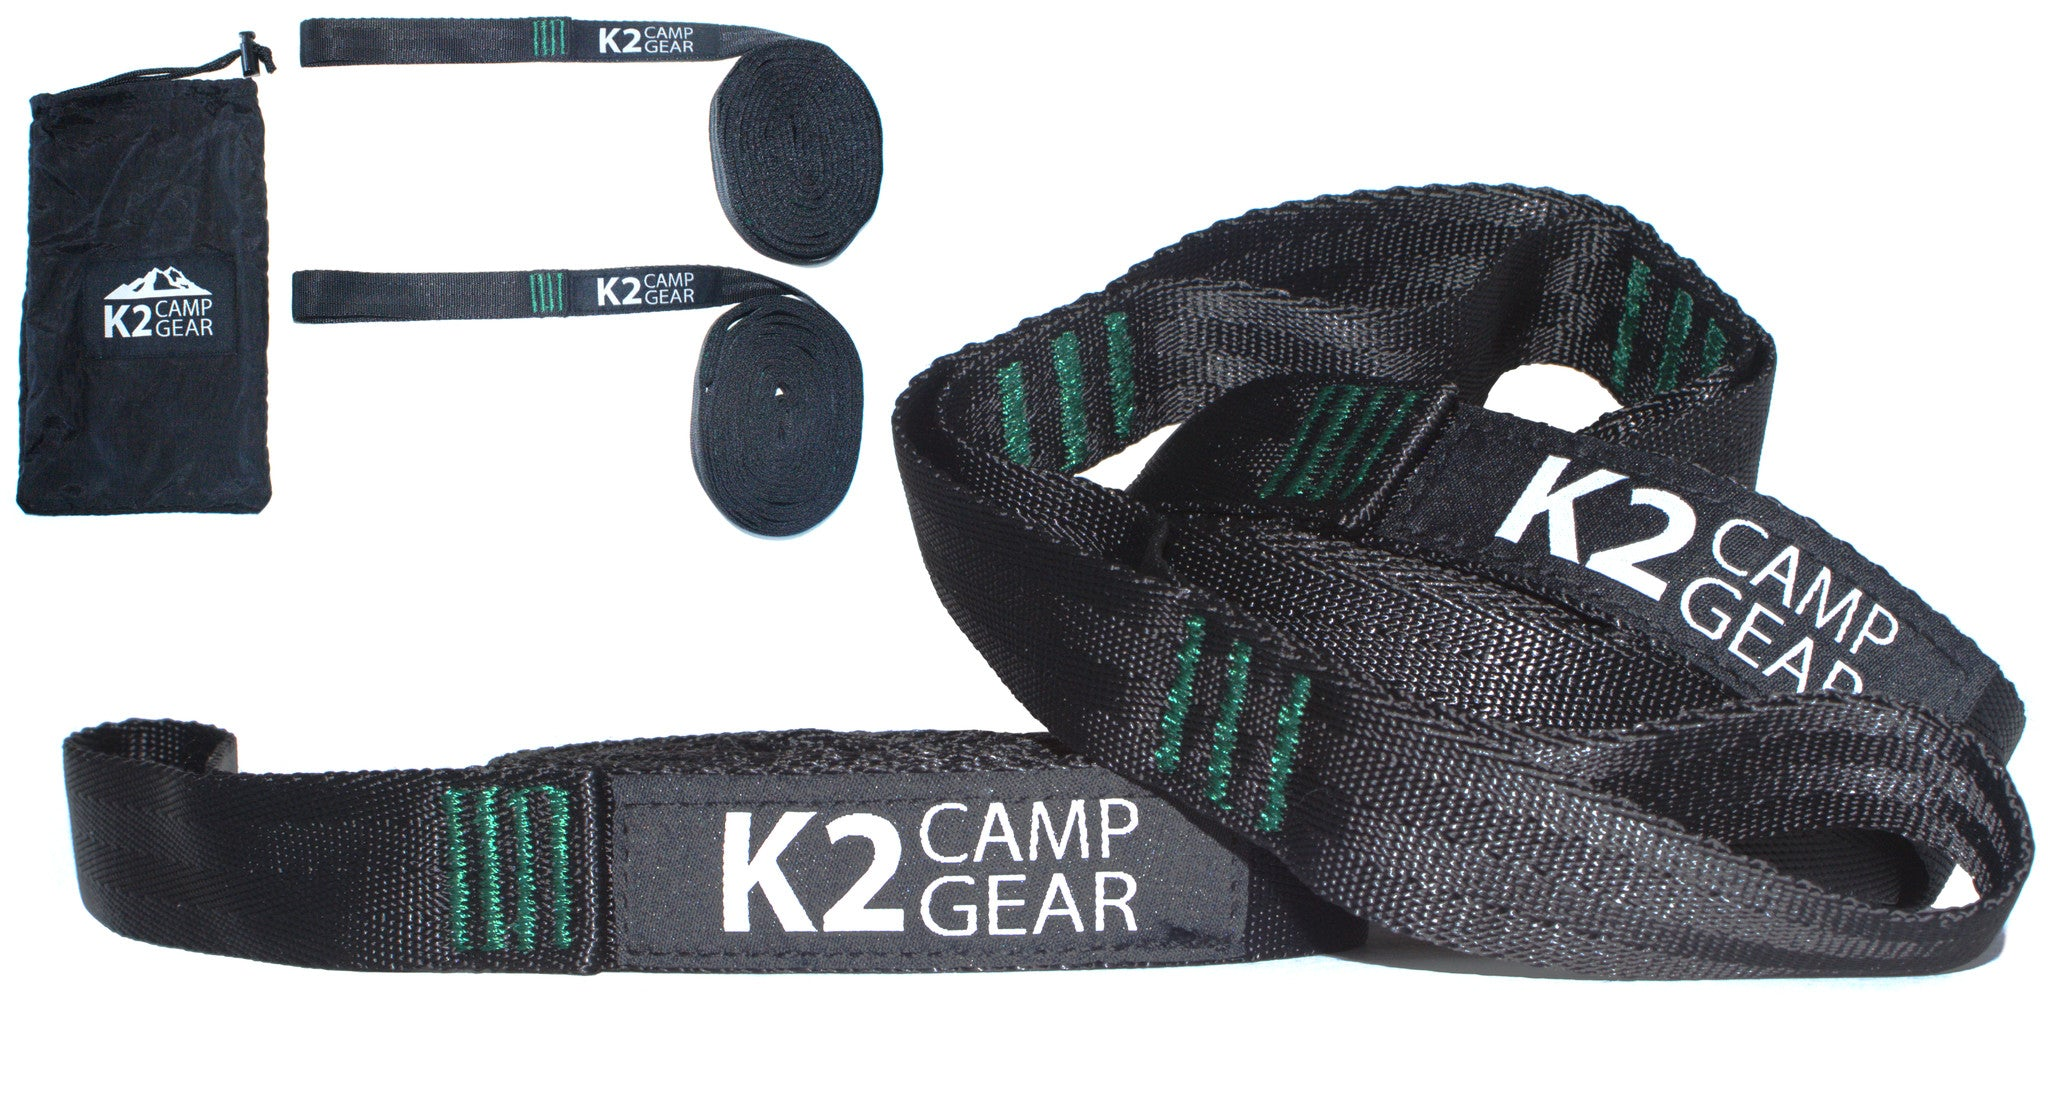 k2 camp gear triple stitched camping hammock tree saver strap set  rh   k2campgear